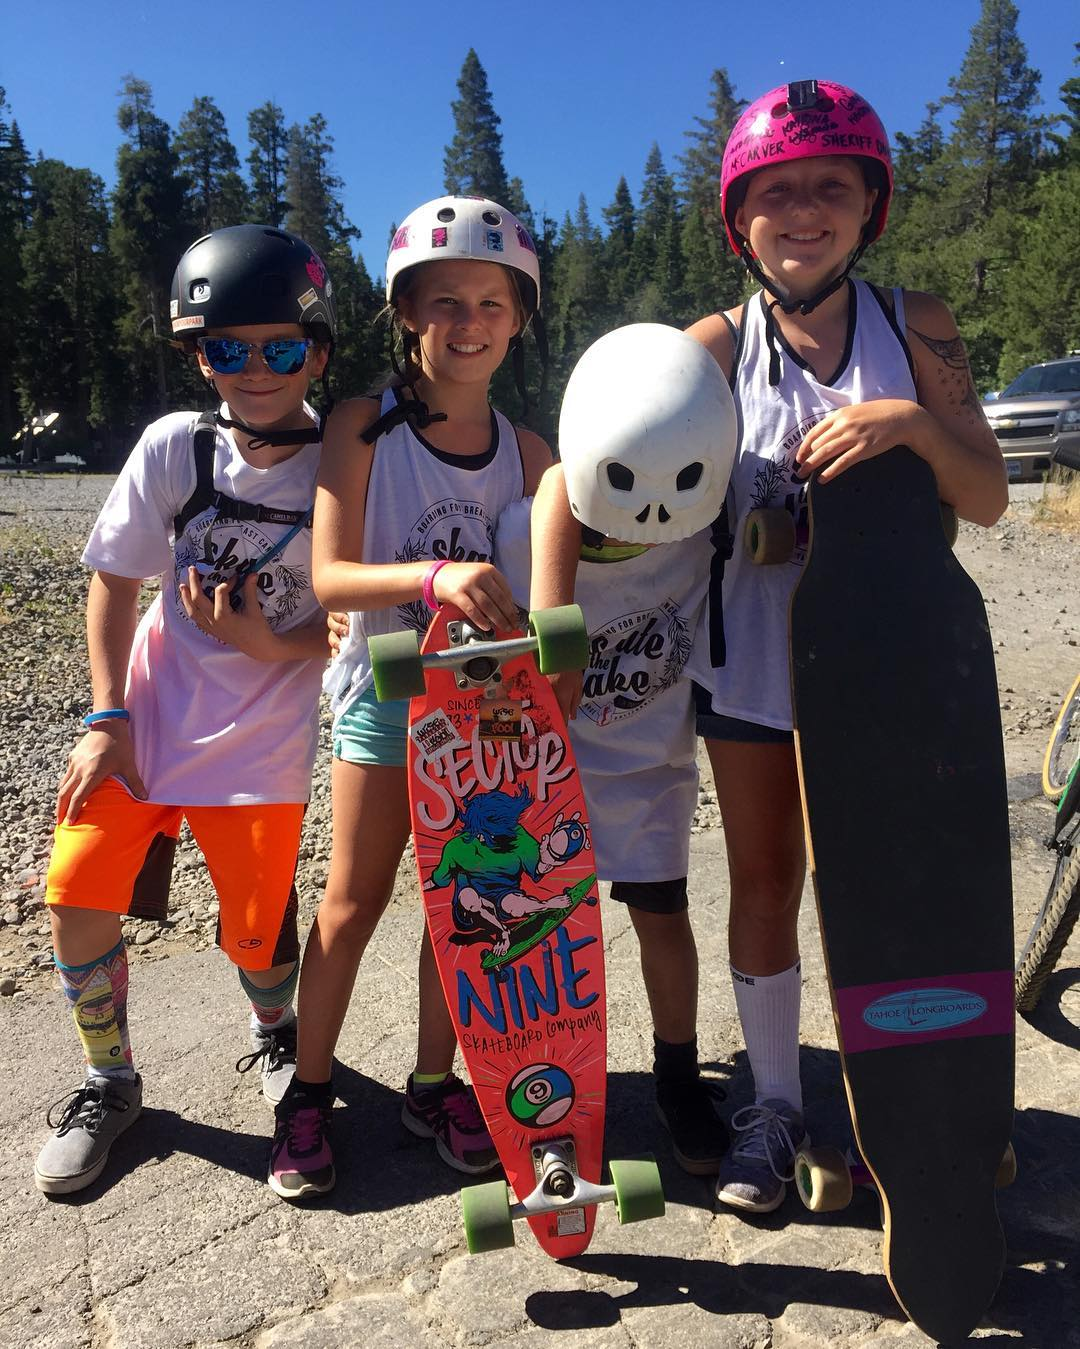 Skate the Lake 2016 is underway & this crew of little rippers is absolutely crushing the 28 mile course! We're 75% of the way to our $20,000 fundraising goal but you can still donate at Classy.org/skatethelake2016!